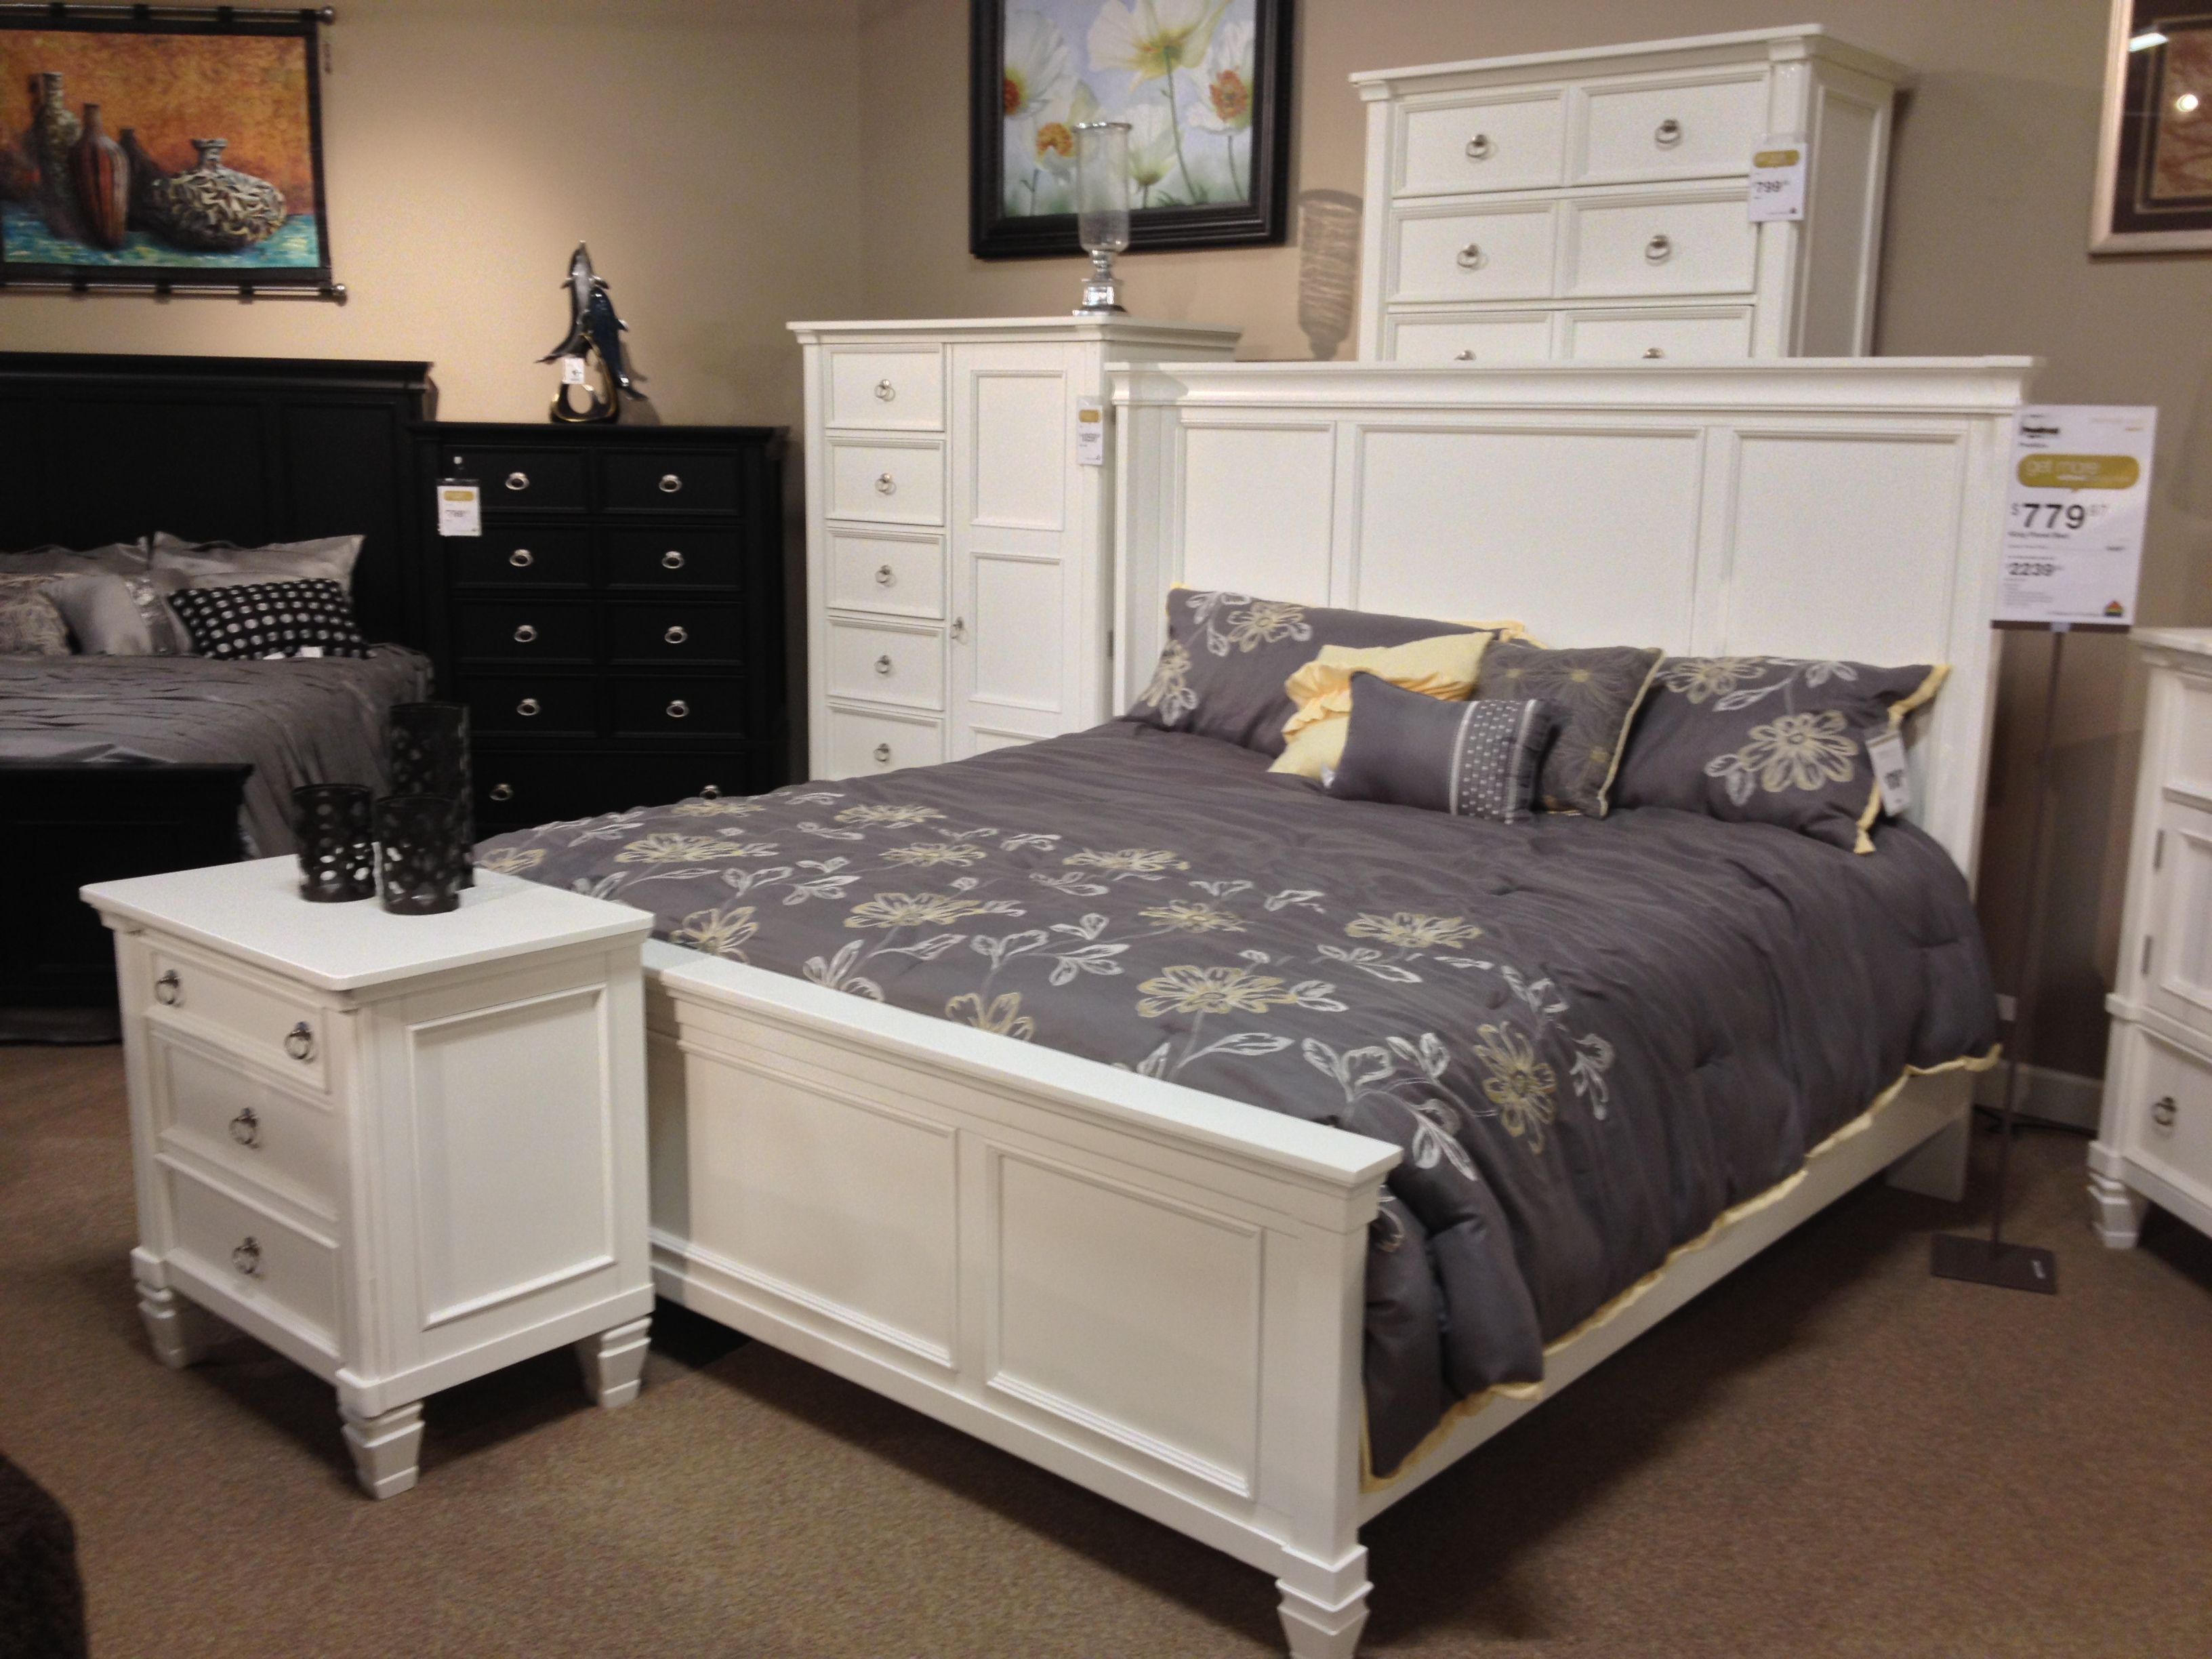 prentice king queen panel bed at ashley furniture in tricities vintage casual pinterest. Black Bedroom Furniture Sets. Home Design Ideas